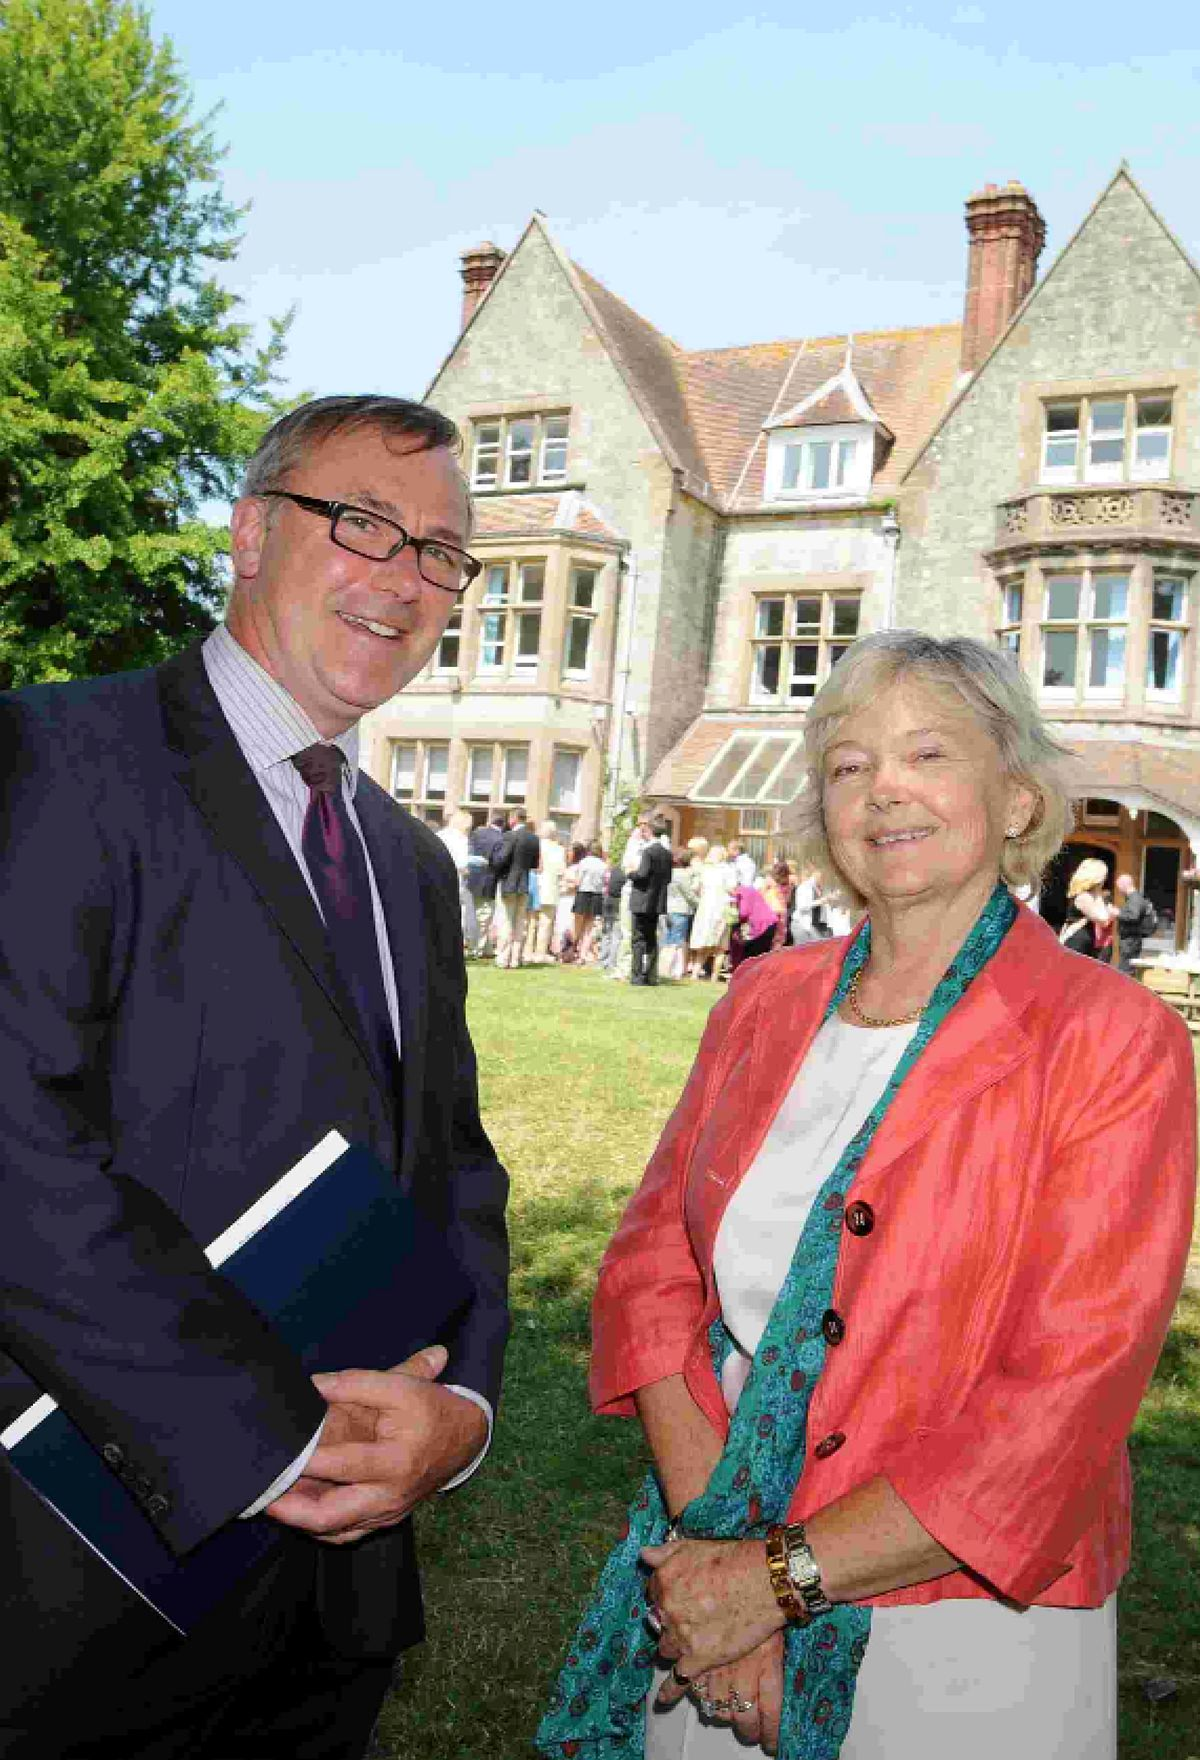 CLASS ACT: Headmaster Andrew Roberts-Wray and former Schools Commissioner for England Dr Elizabeth Sidwell